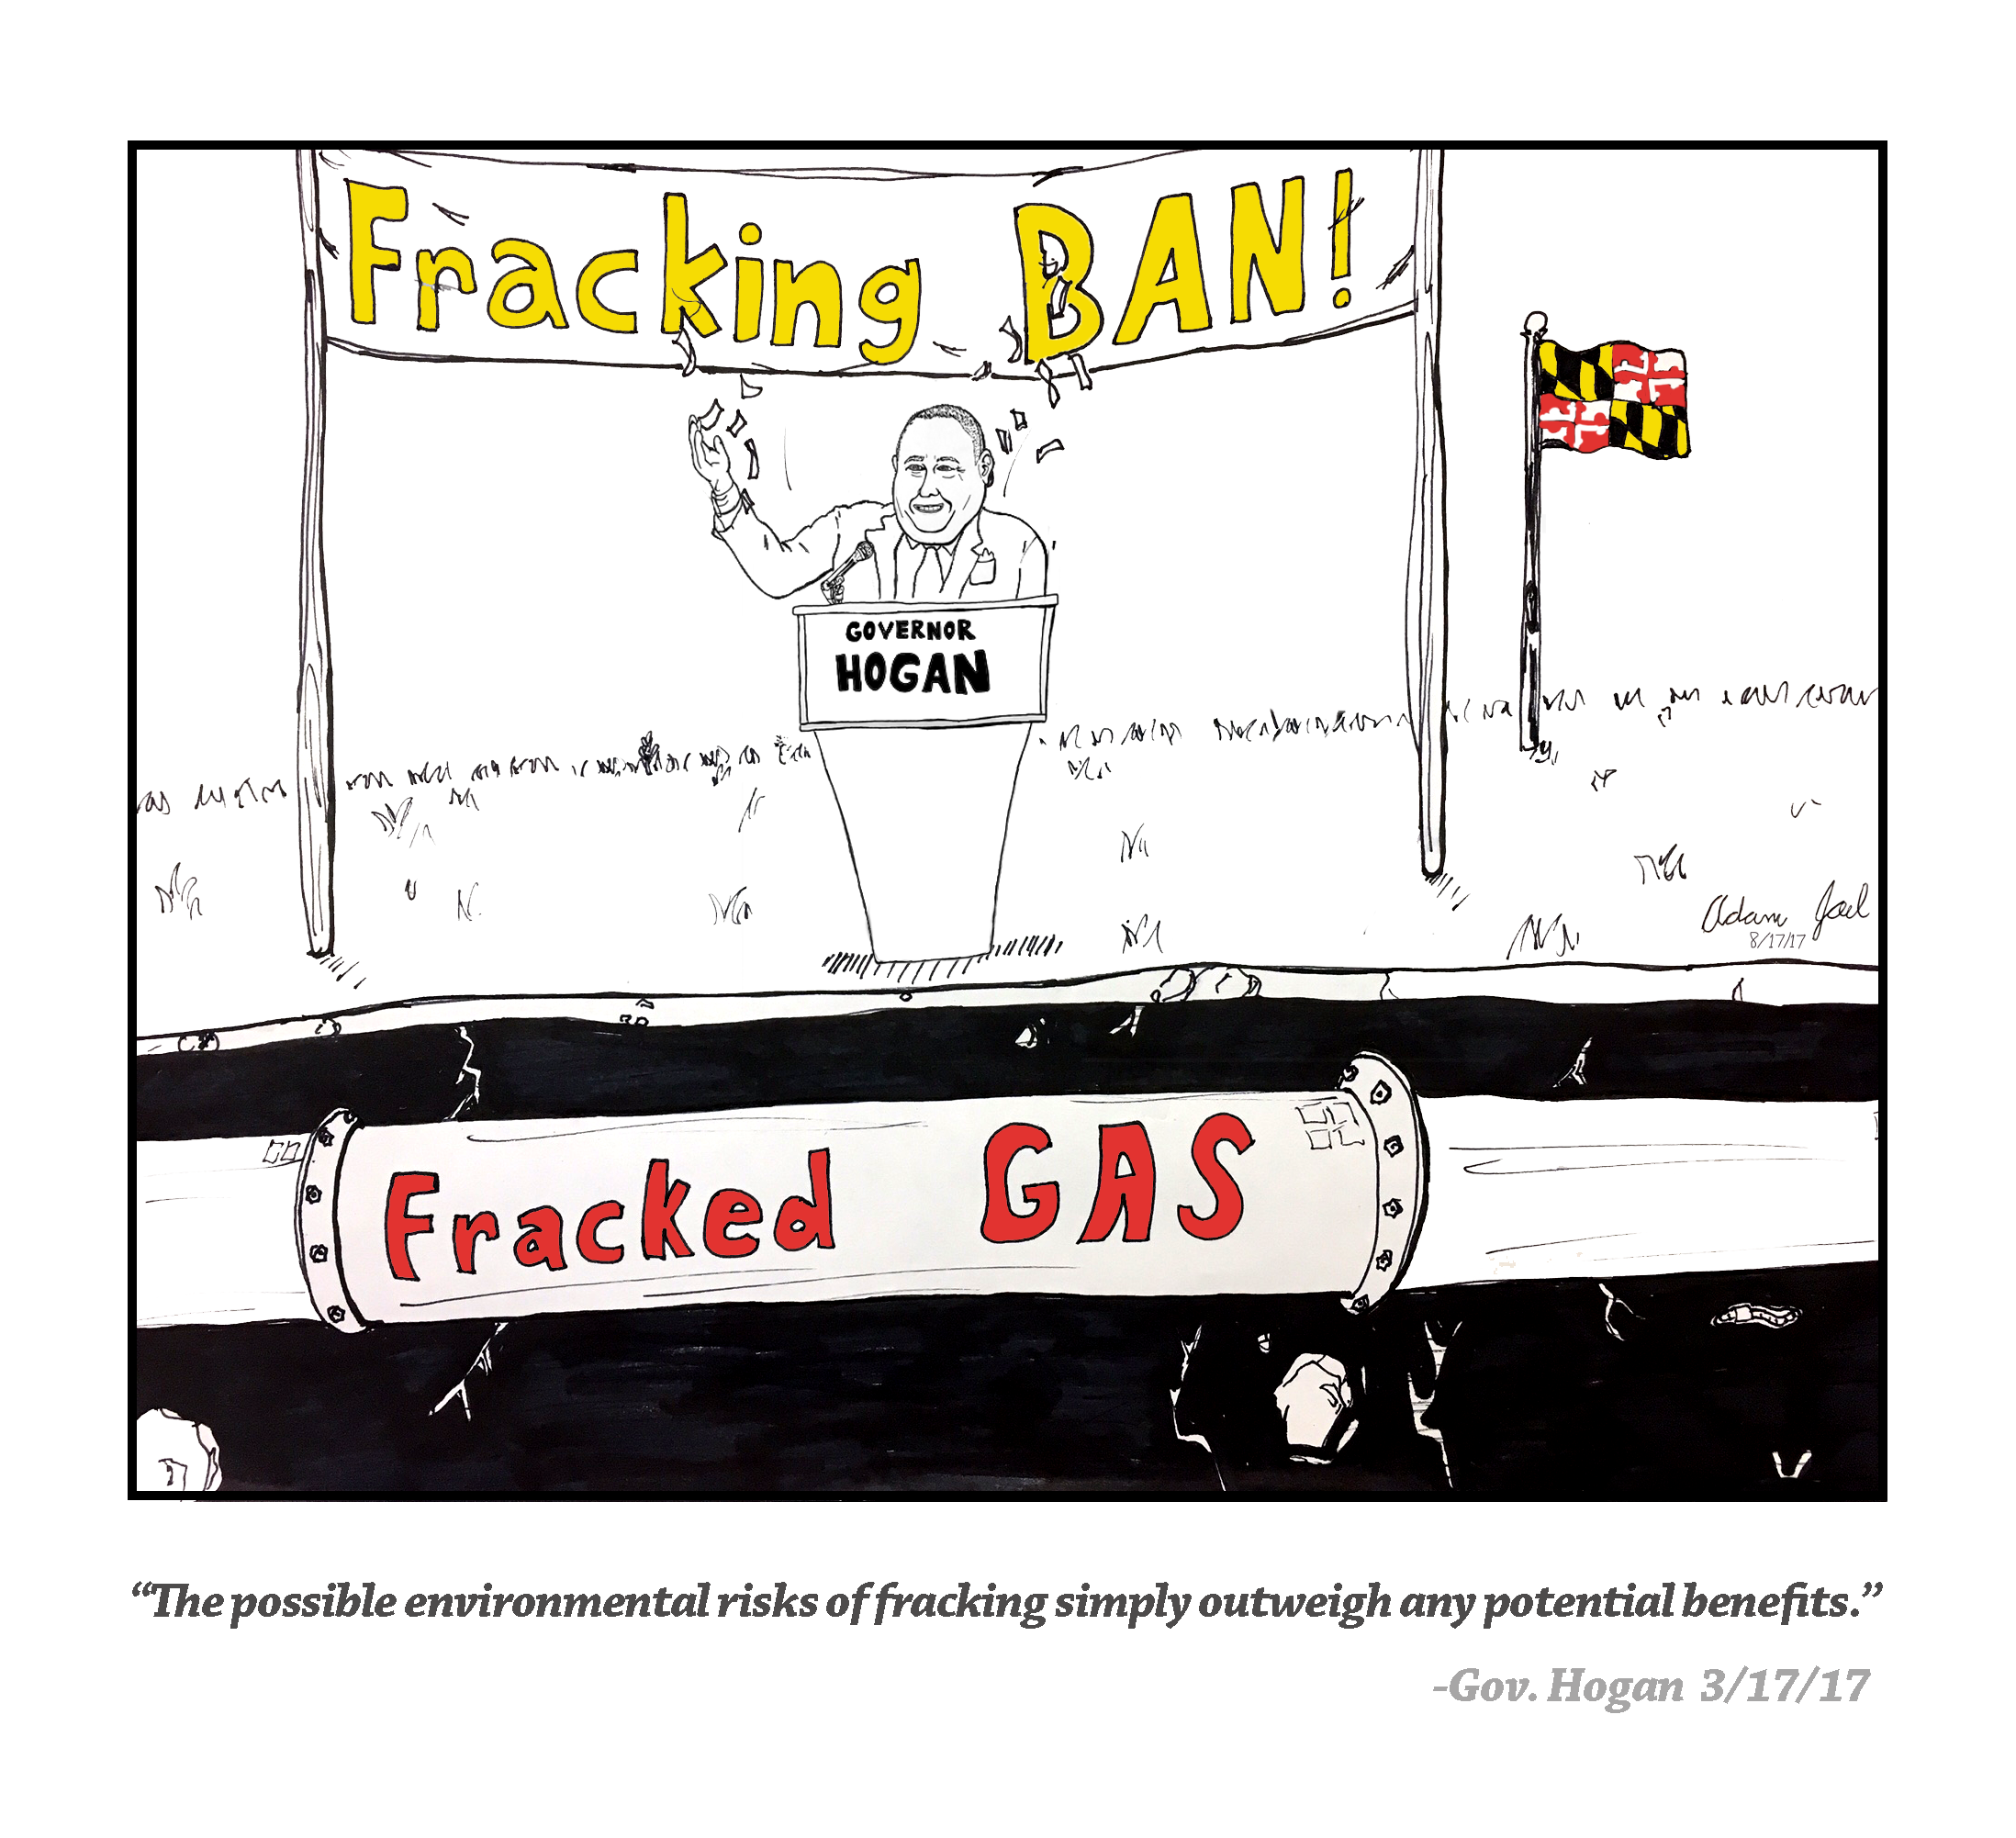 Governor Hogan banned fracking in Maryland but is okay with new fossil fuel pipelines carrying fracked gas through the state.